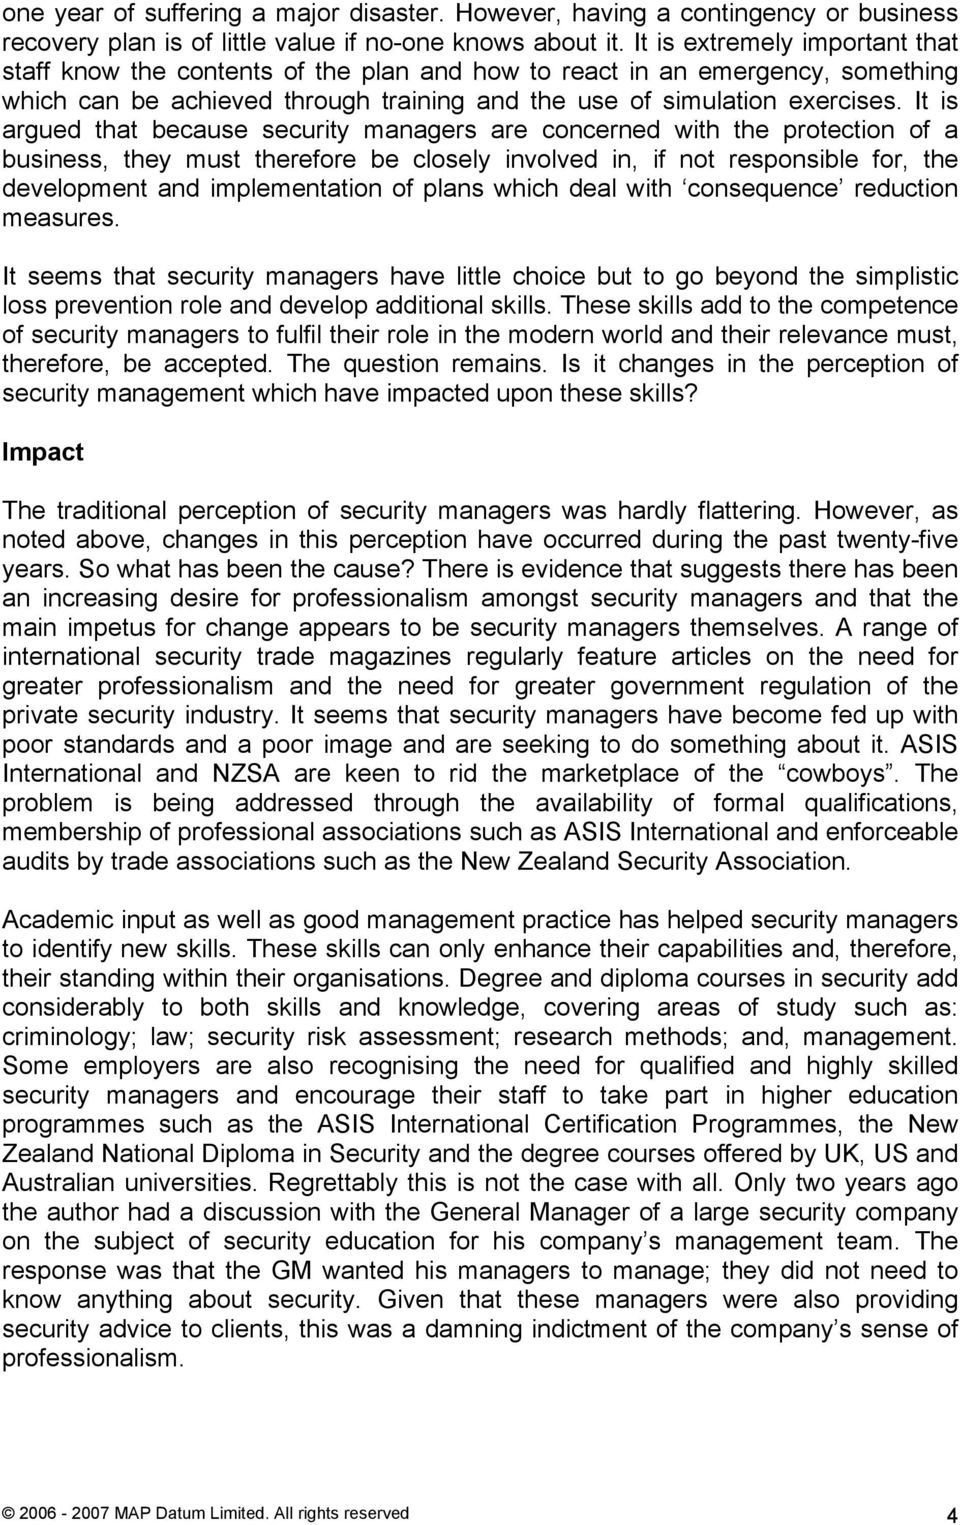 It is argued that because security managers are concerned with the protection of a business, they must therefore be closely involved in, if not responsible for, the development and implementation of